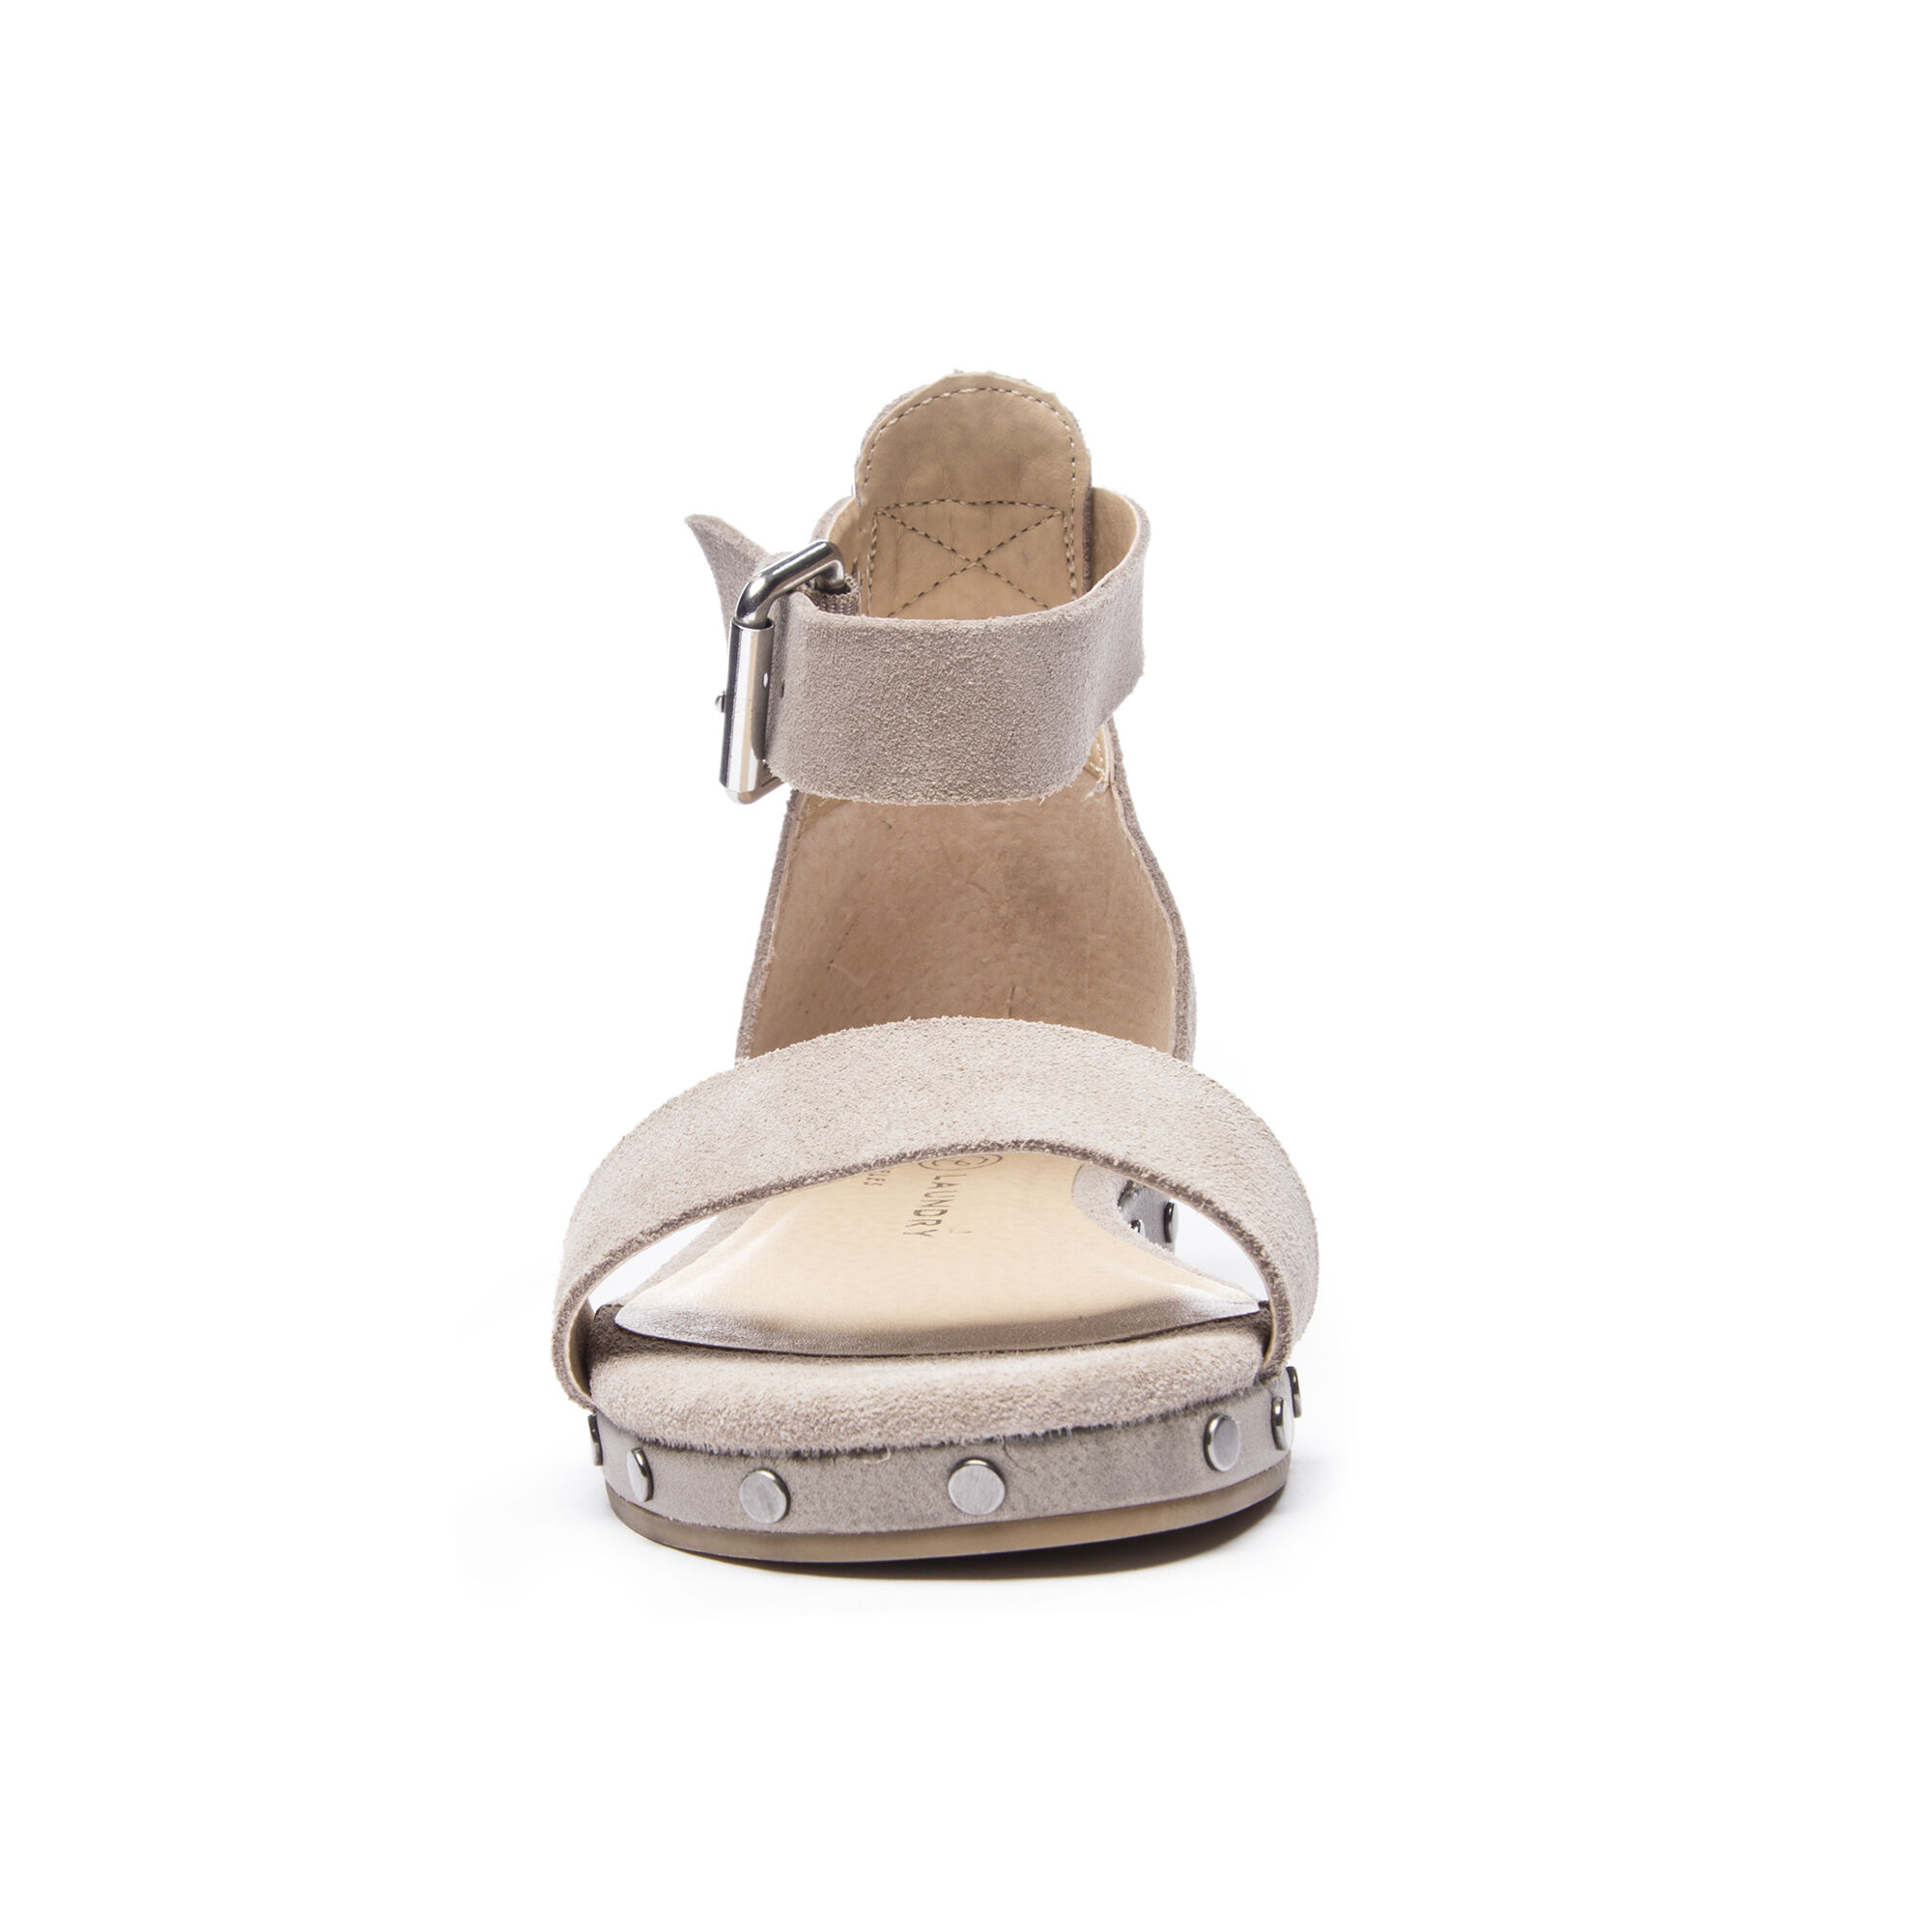 b244d27ae53 Chinese Laundry Grady Flat Suede Sandal